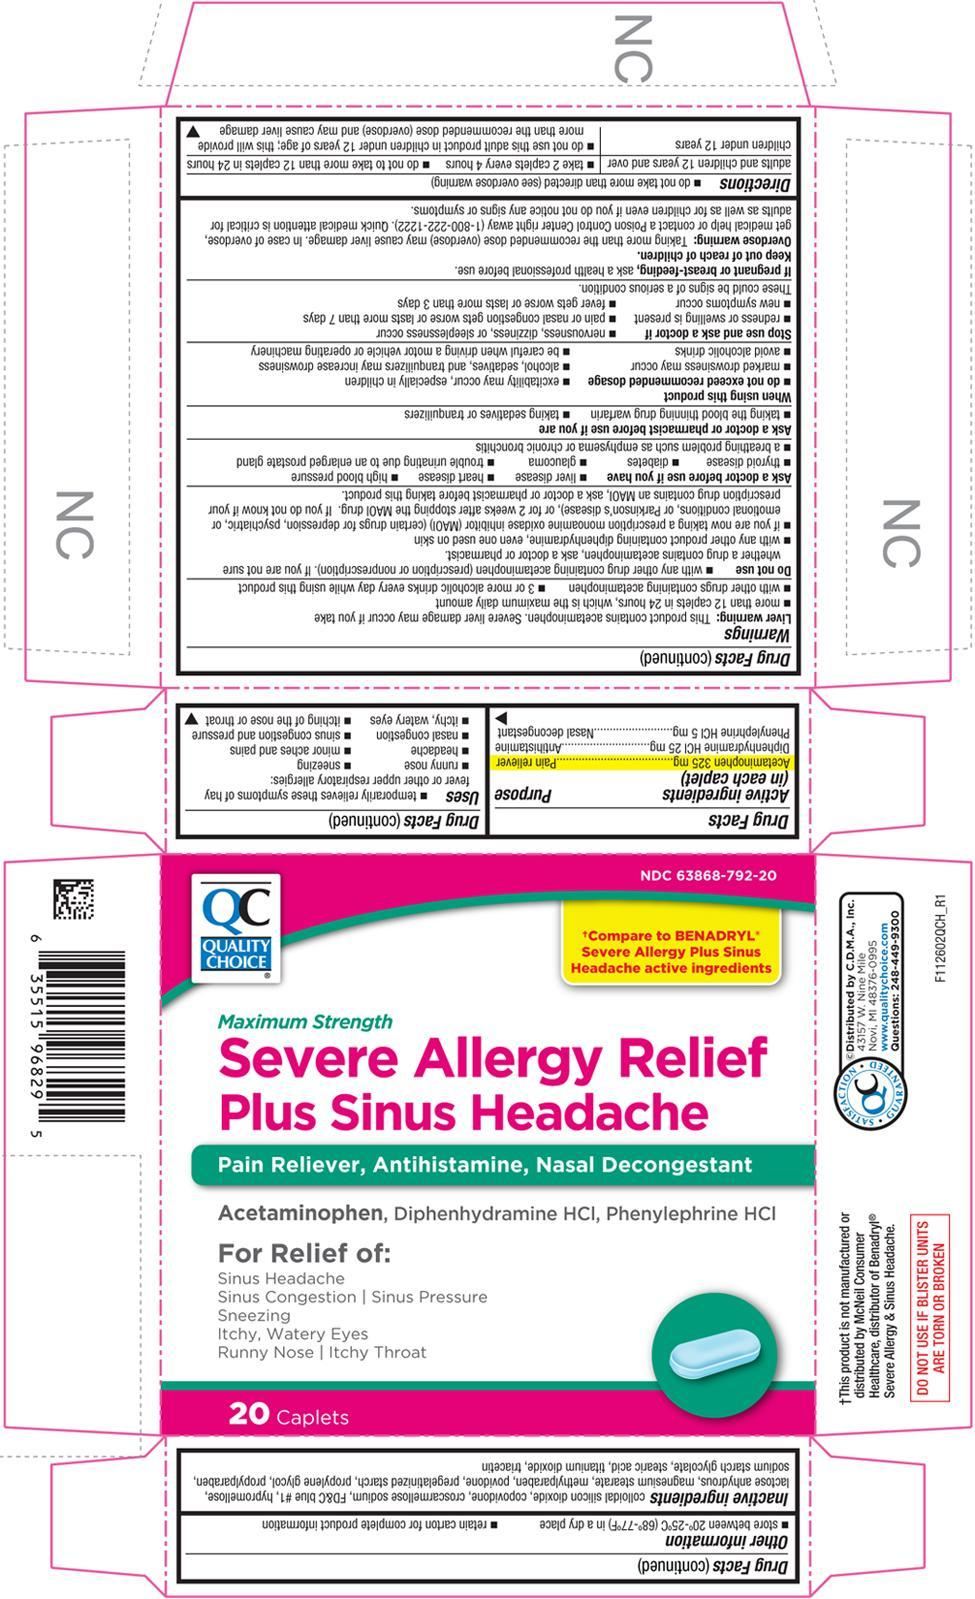 Severe Allergy Relief Plus Sinus Headache (Acetaminophen, Diphenhydramine Hydrochloride, And Phenylephrine Hydrochloride) Tablet, Coated [Chain Drug Marketing Association]